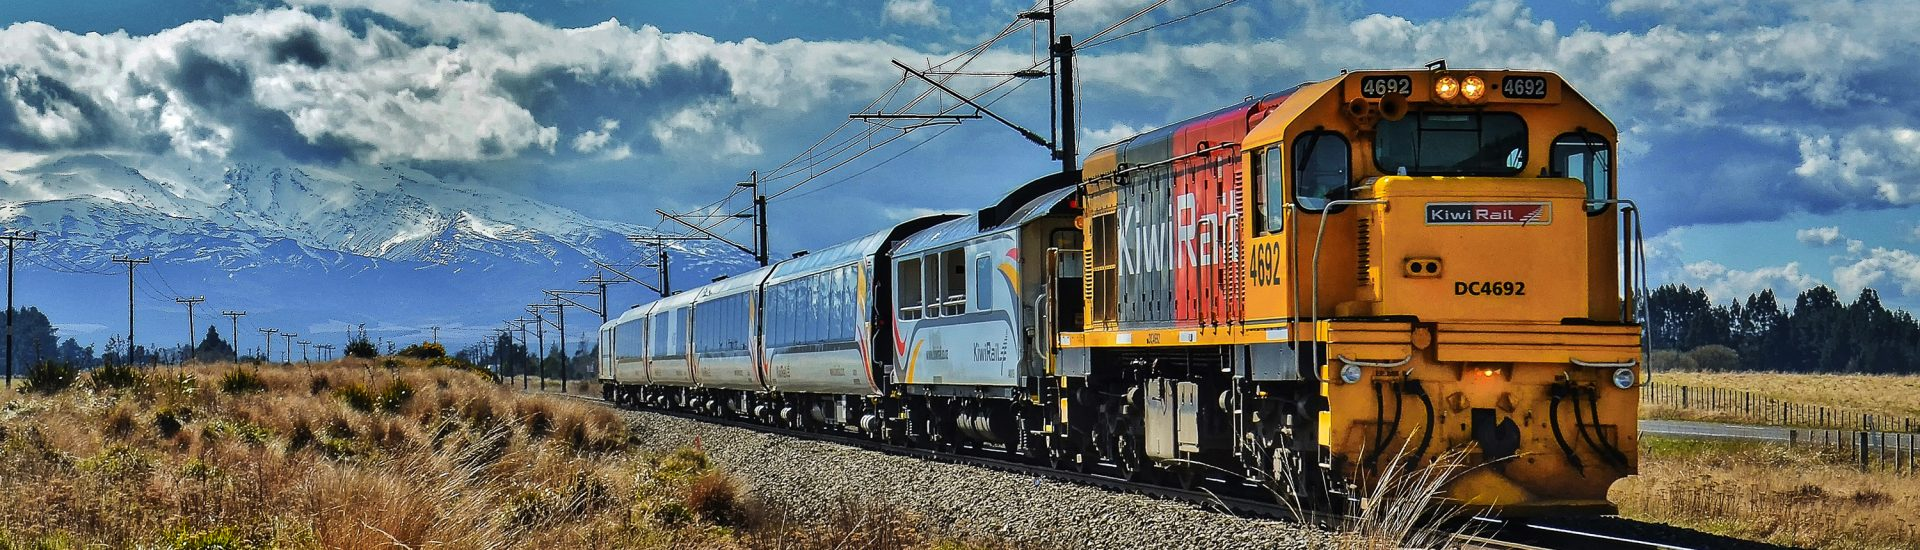 Northern Explorer Auckland to Wellington train, tranzalpine, wellingto to auckland kiwi rail.